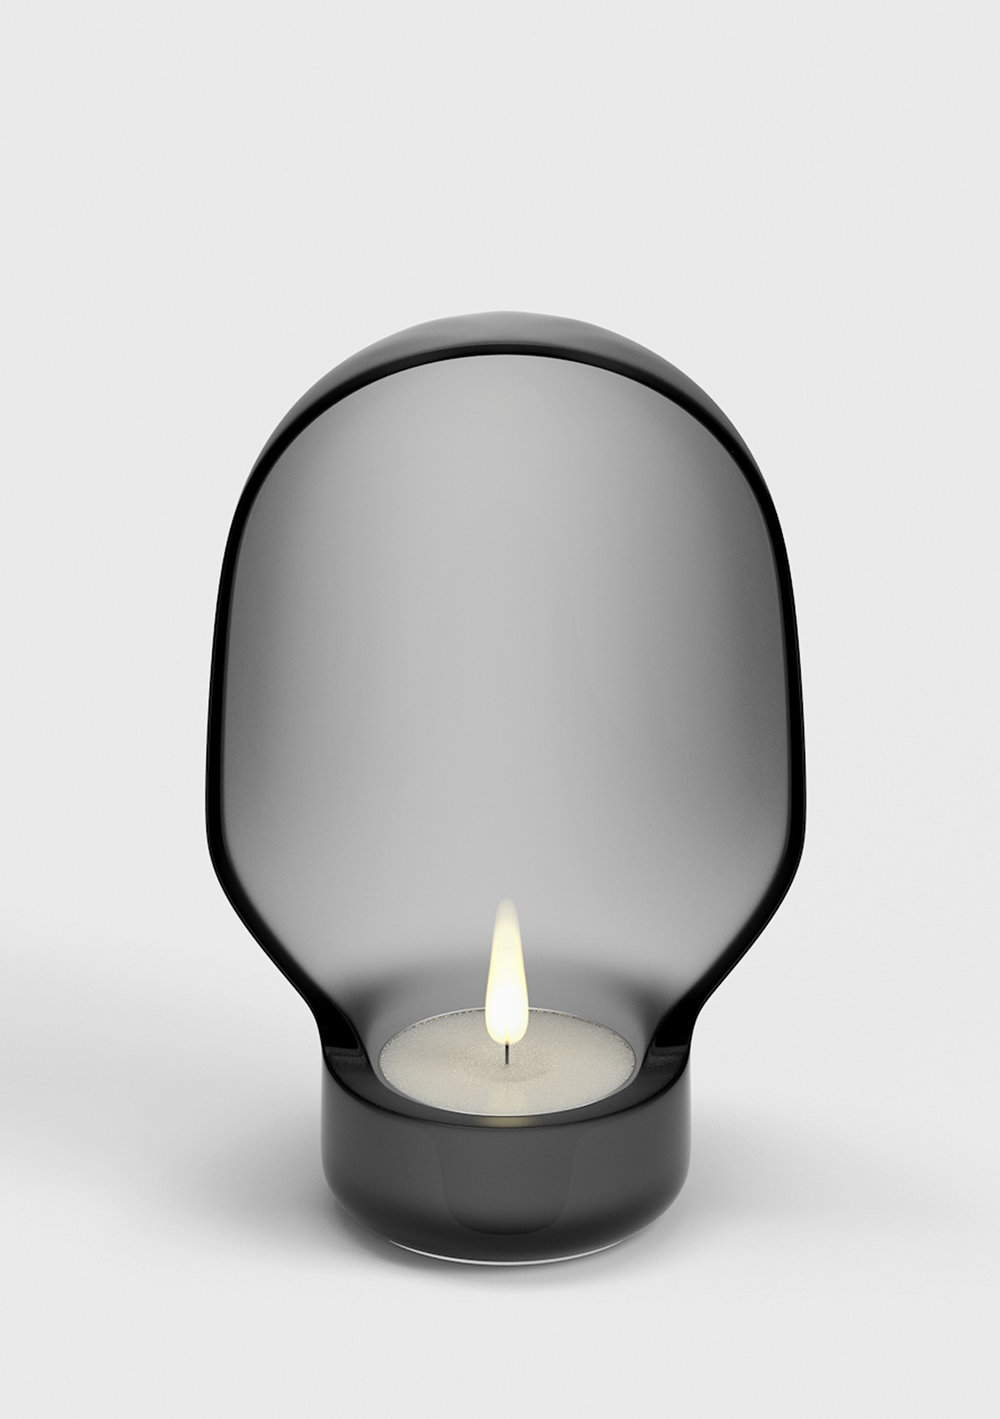 HAUS CANDLE HOLDER